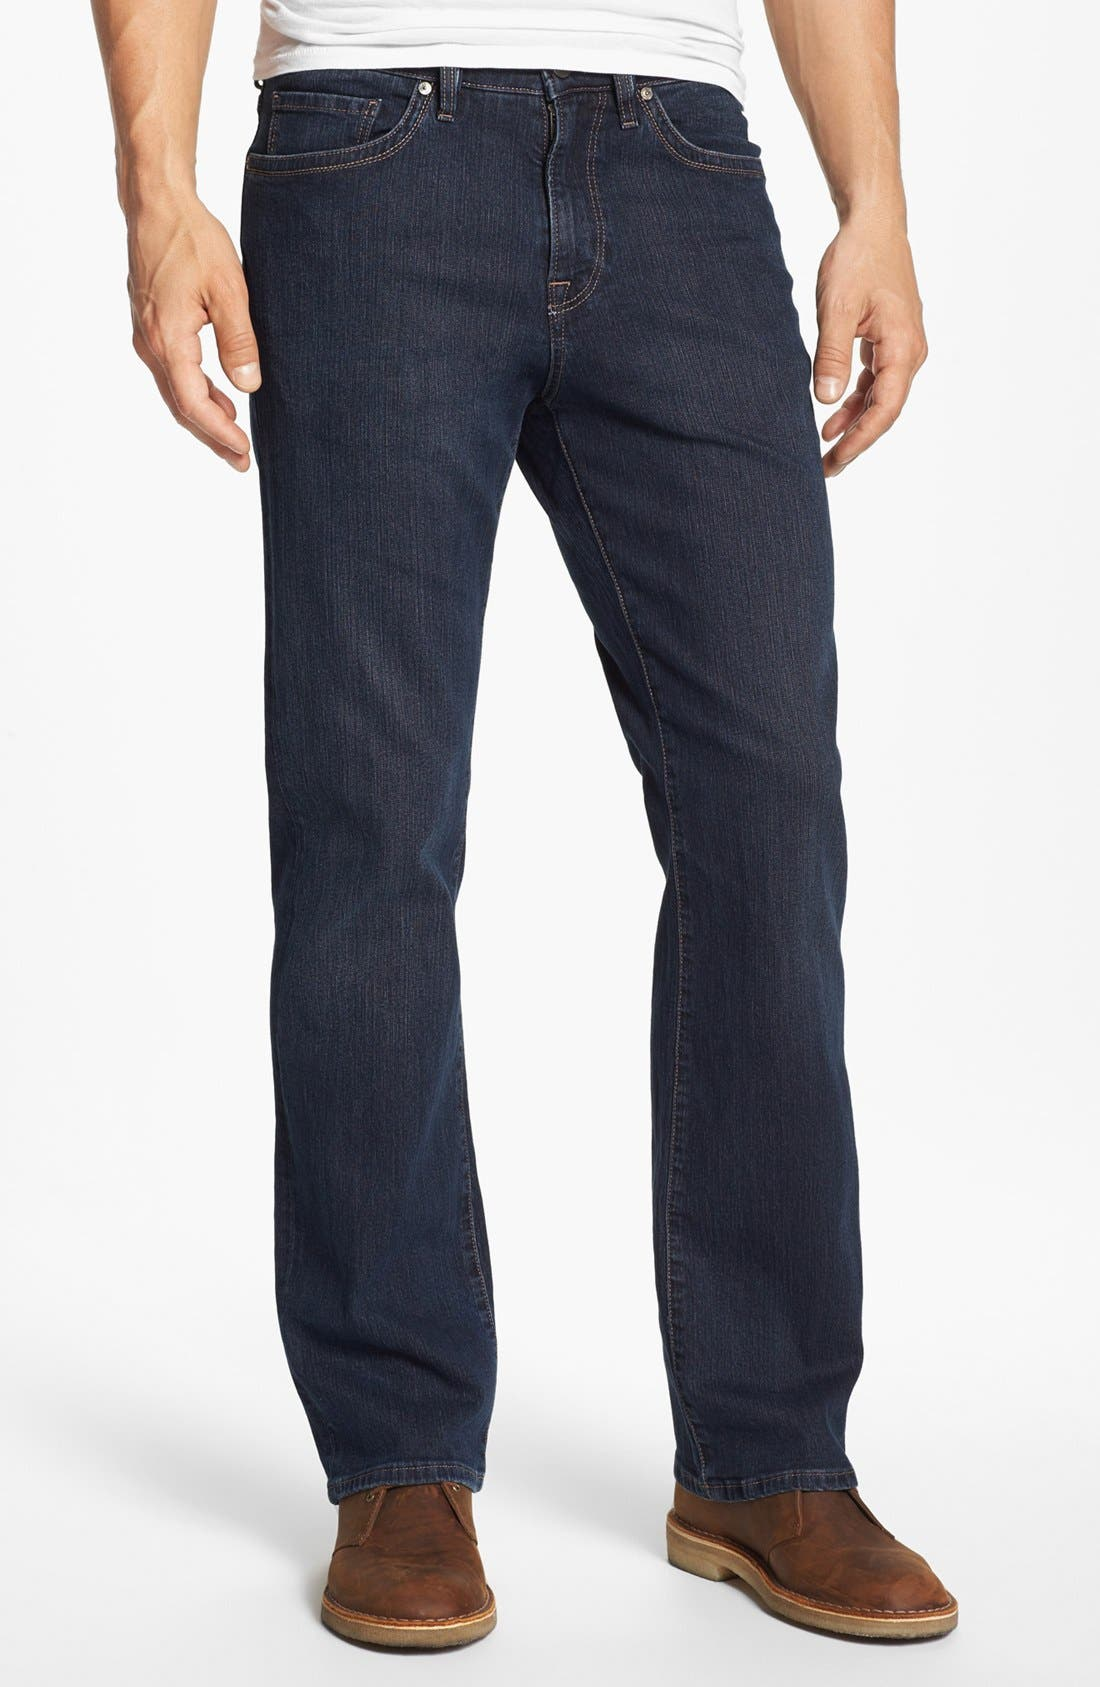 Charisma Relaxed Fit Jeans,                             Main thumbnail 1, color,                             DARK COMFORT